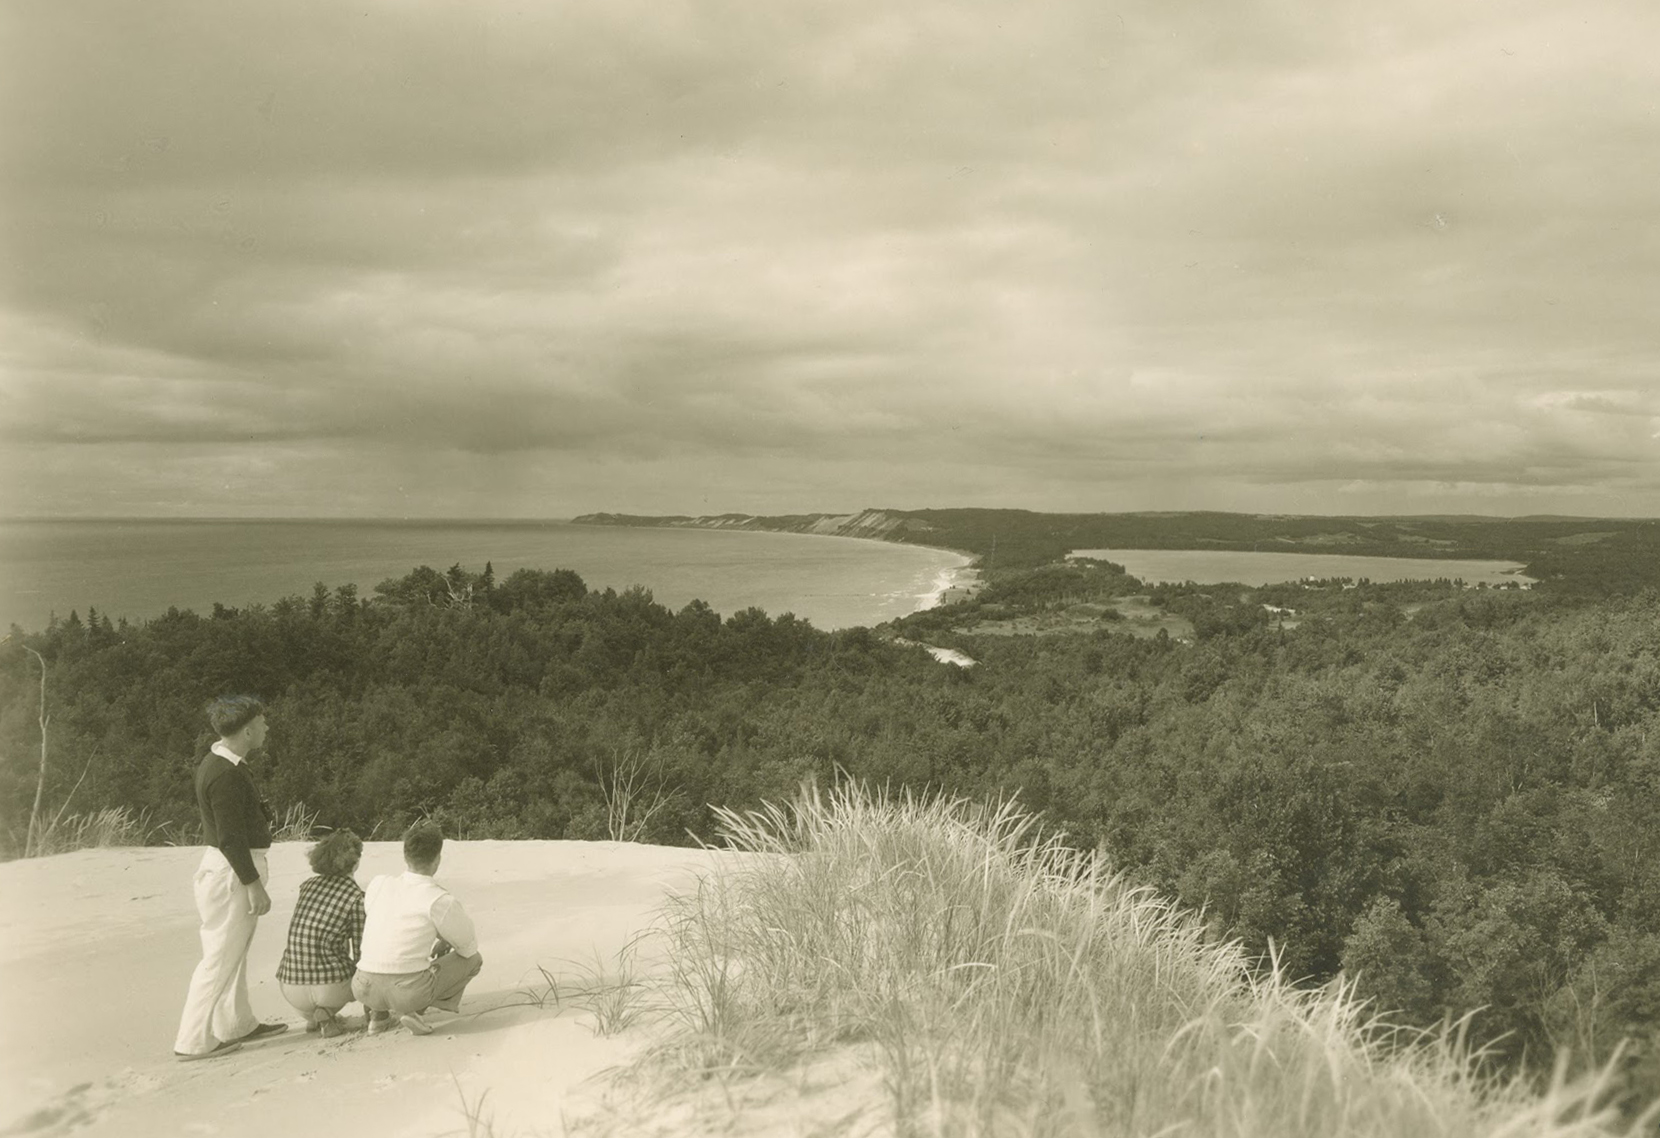 The View from Old Baldy